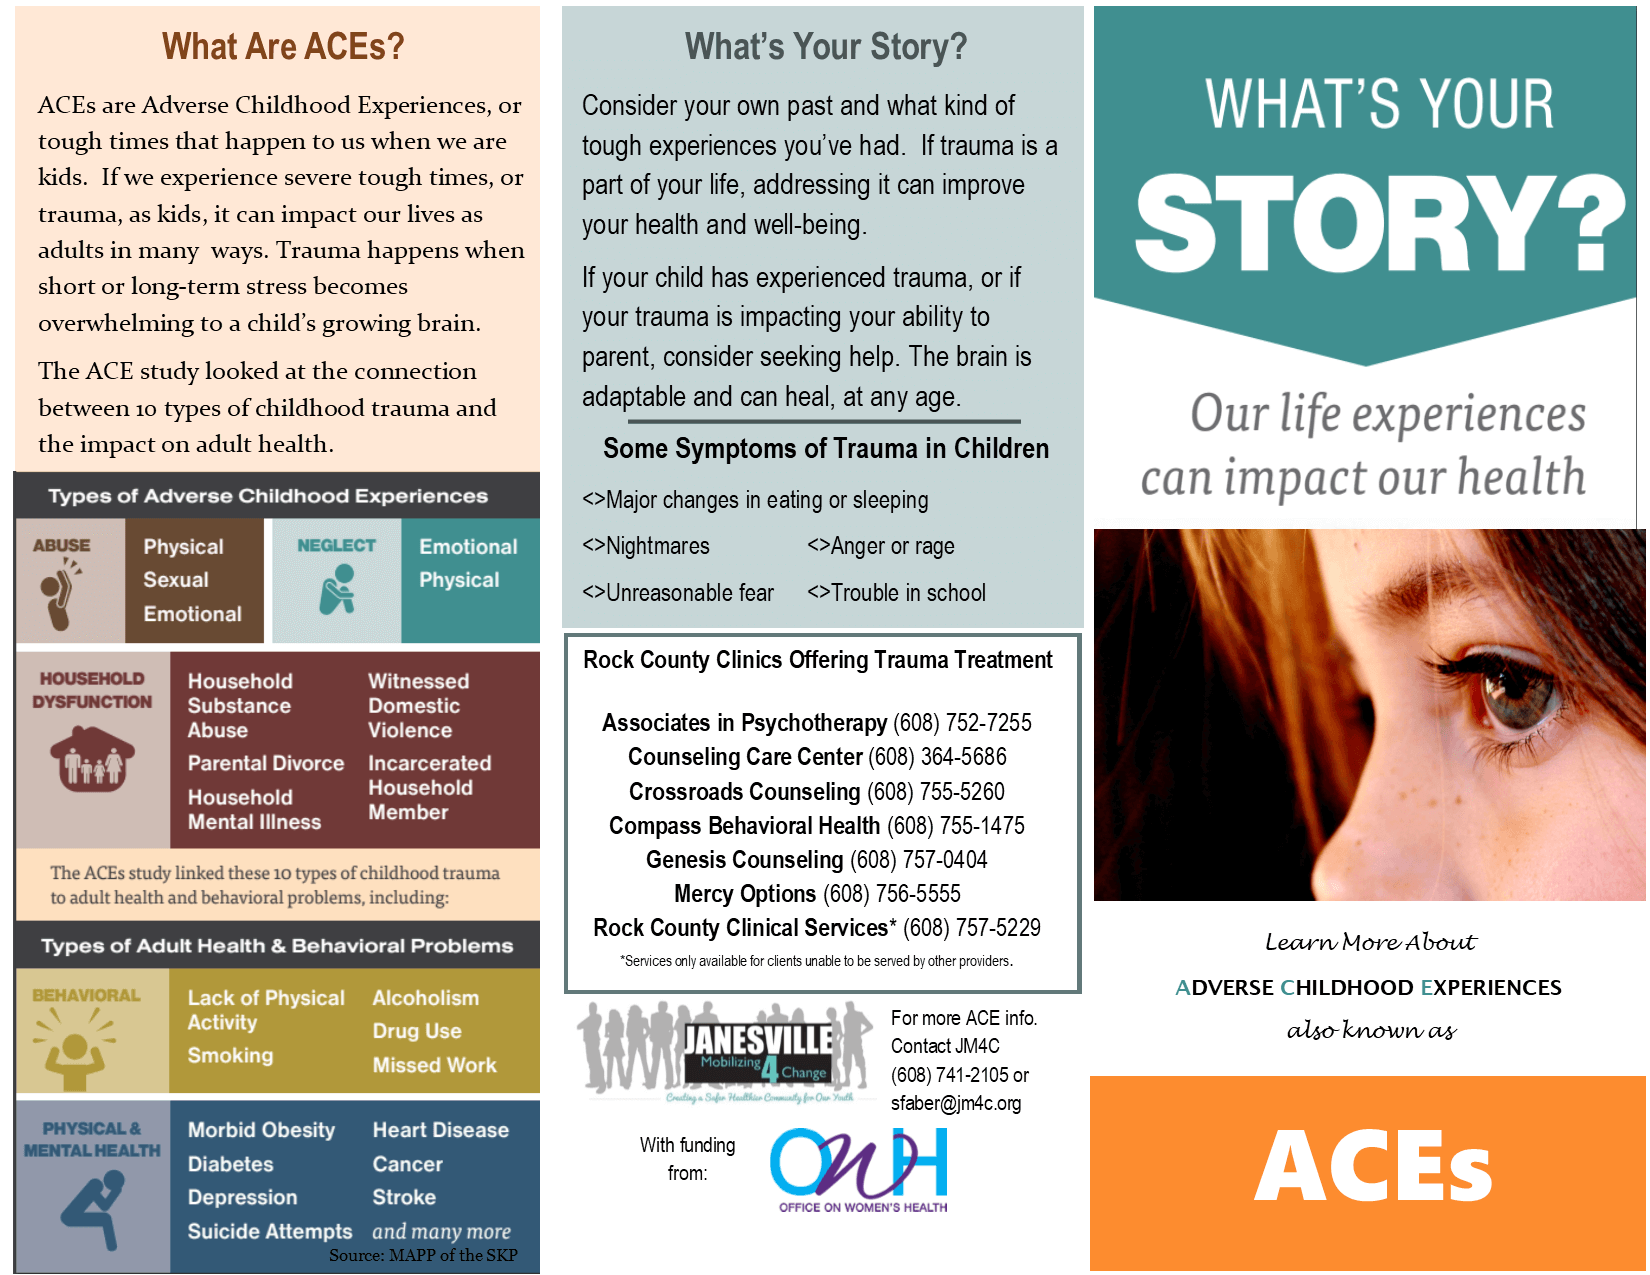 More On Adverse Developmental Impacts >> Adverse Childhood Experiences Janesville Mobilizing 4 Change